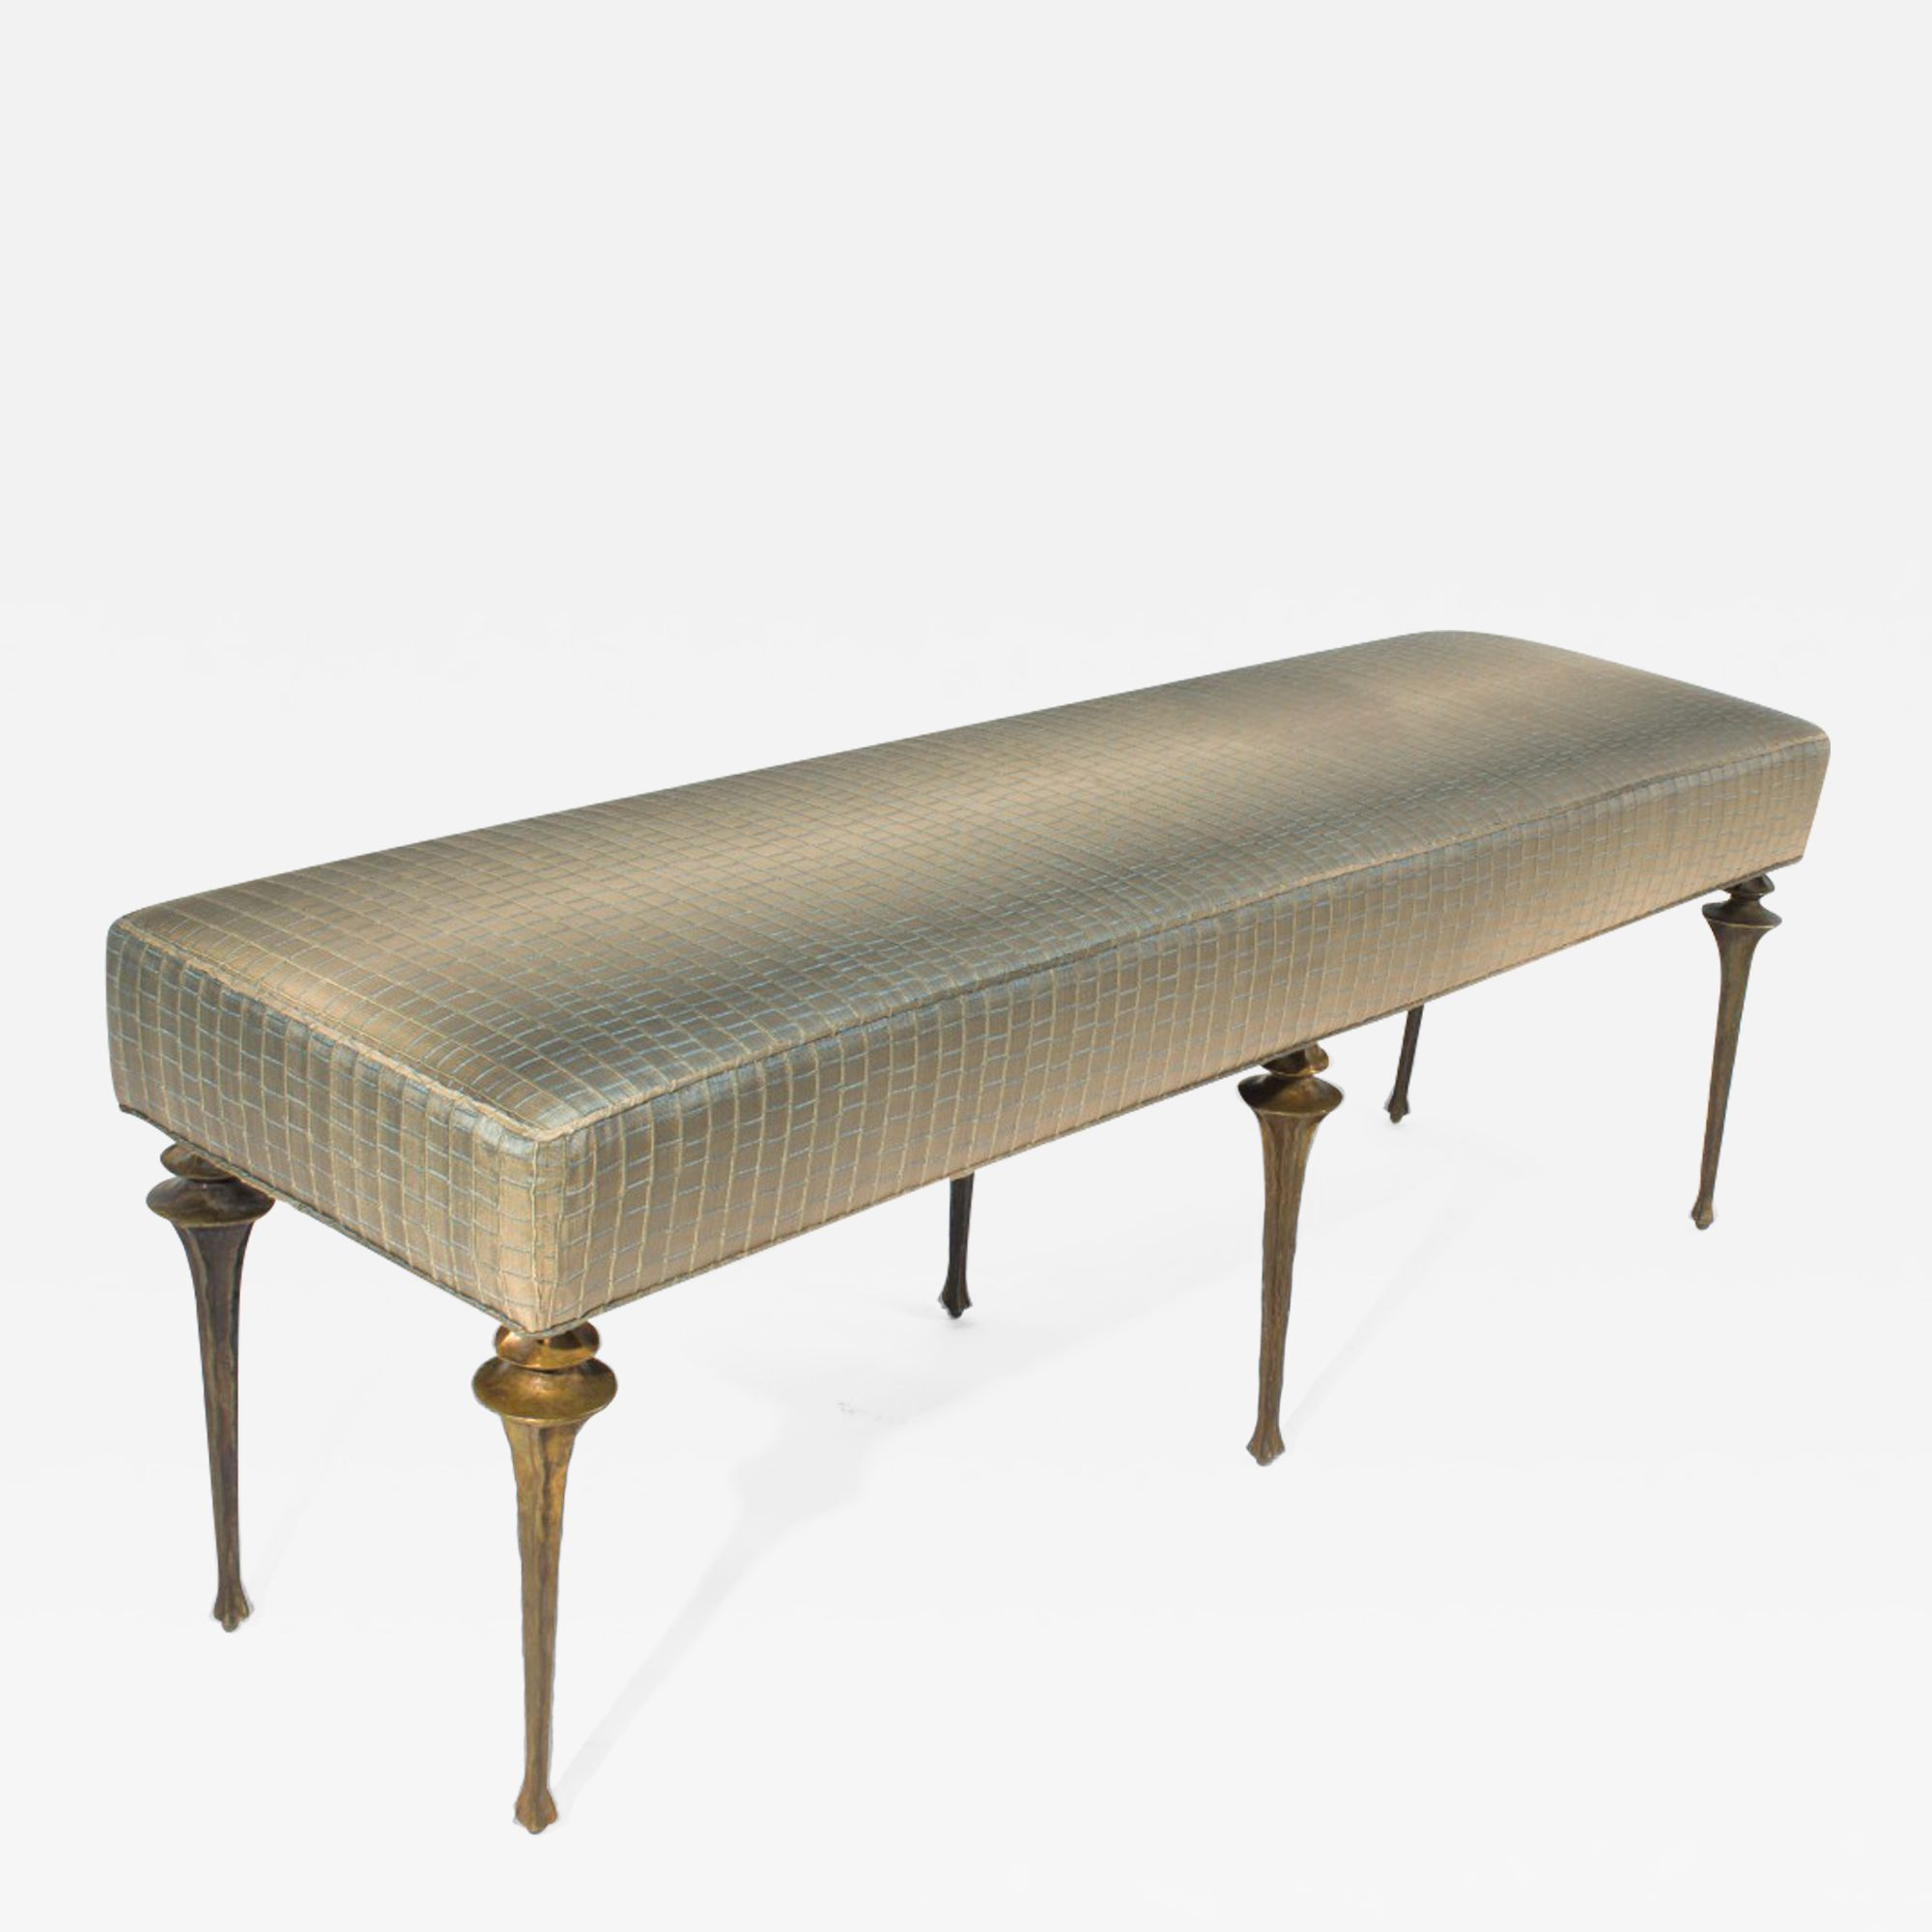 Pleasing Bronze Bench By Marc Bankowsky France 2006 Products In Pabps2019 Chair Design Images Pabps2019Com